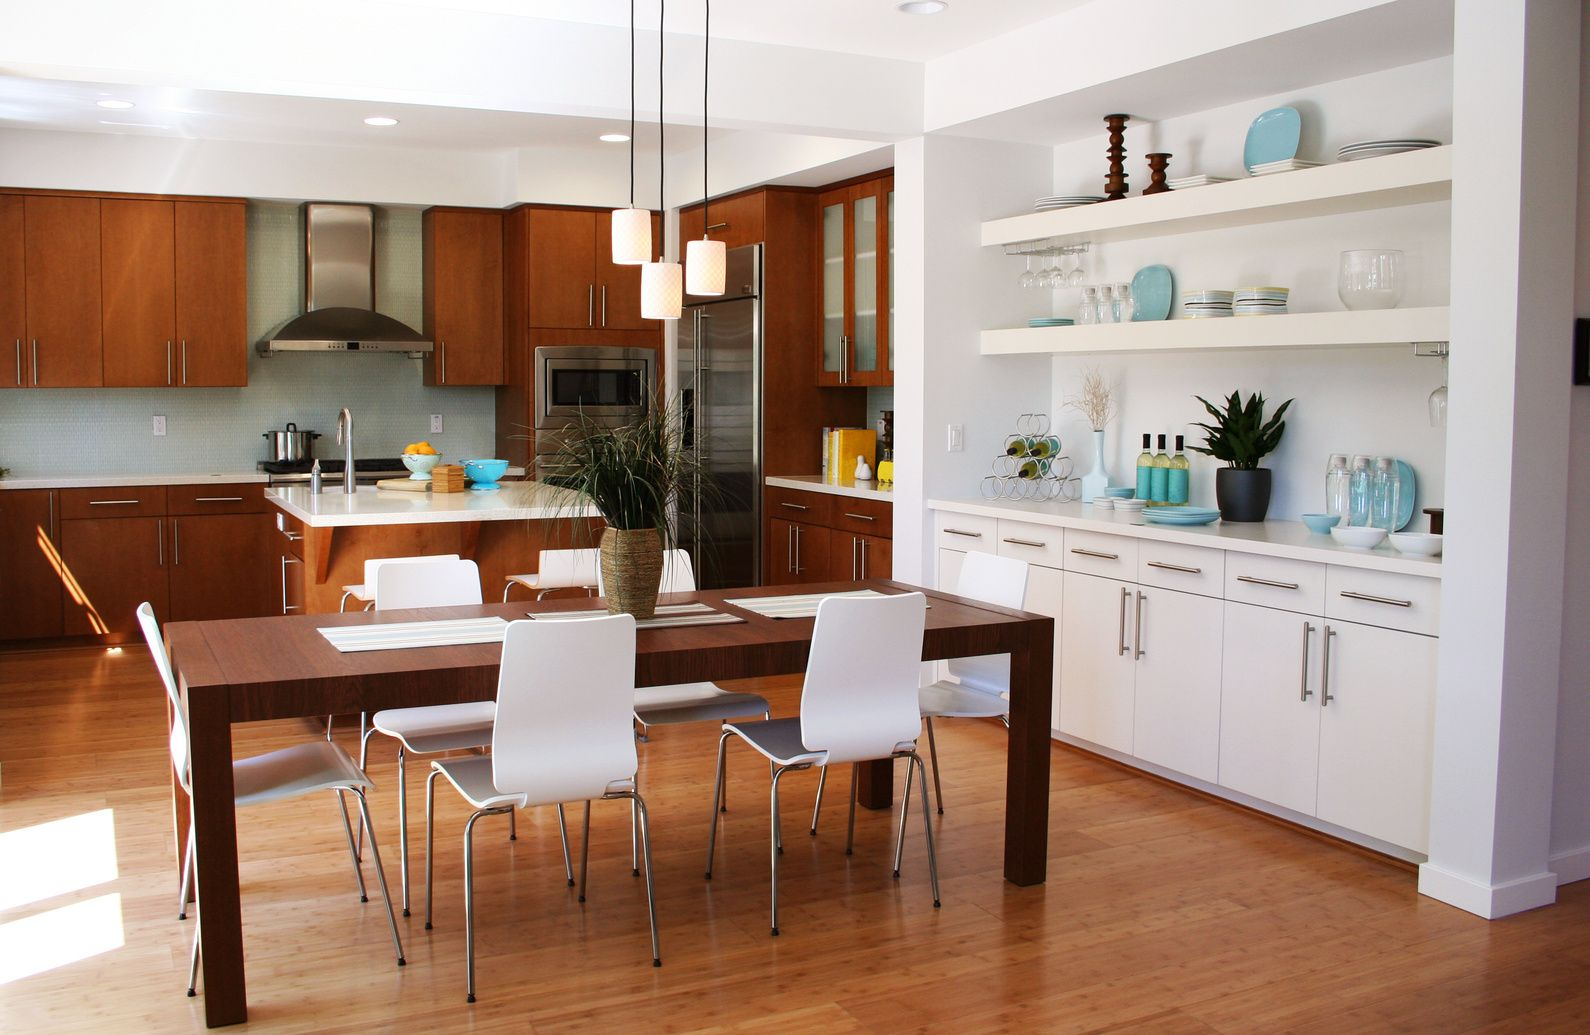 Furniture Modern Kitchen Wooden Floor Dining Area Design  For The Stunning Dining Room And Kitchen Designs 2018